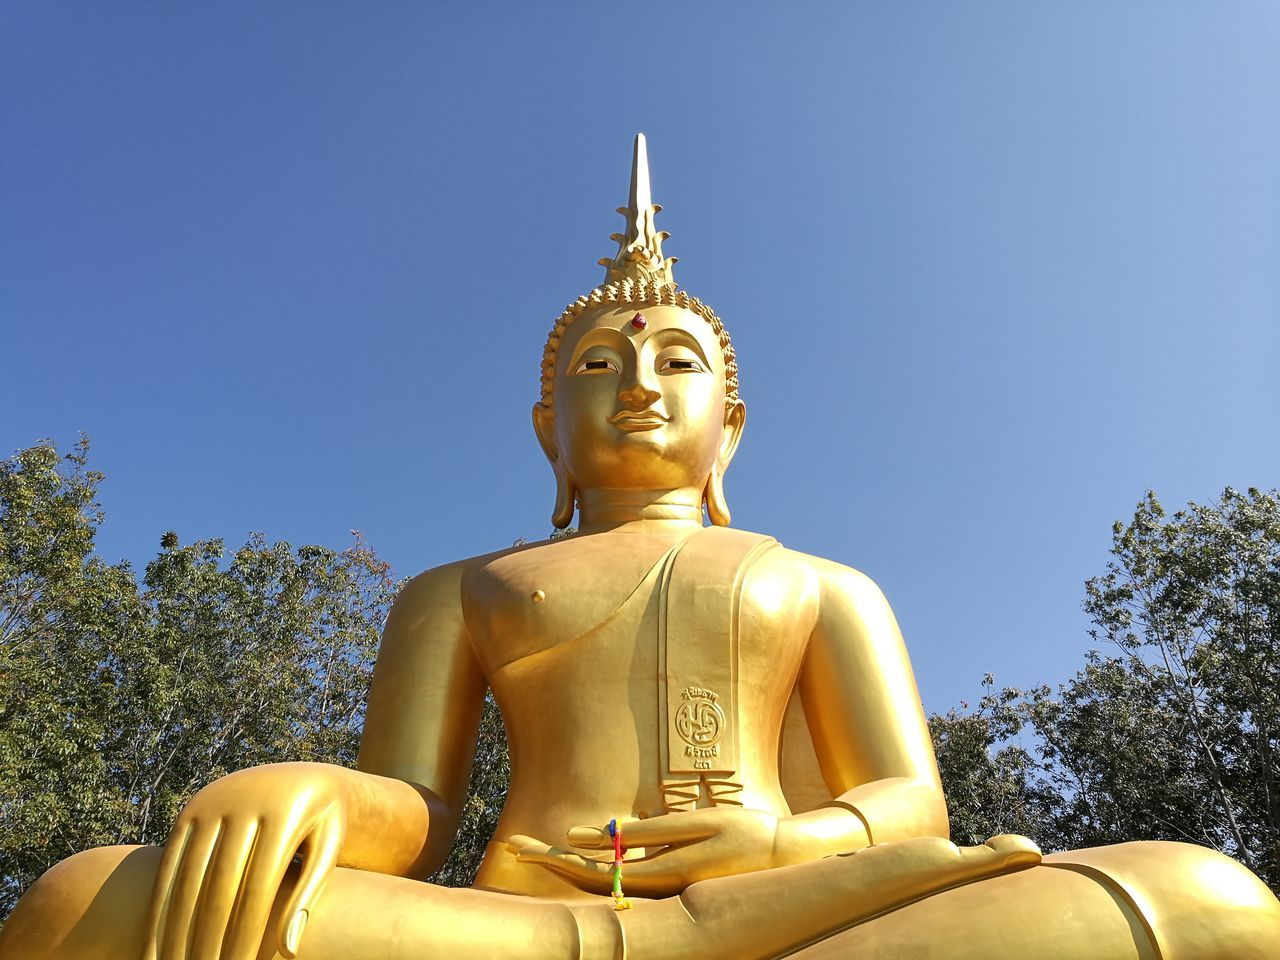 statue, religion, sculpture, male likeness, spirituality, human representation, low angle view, idol, golden color, gold colored, no people, clear sky, sky, day